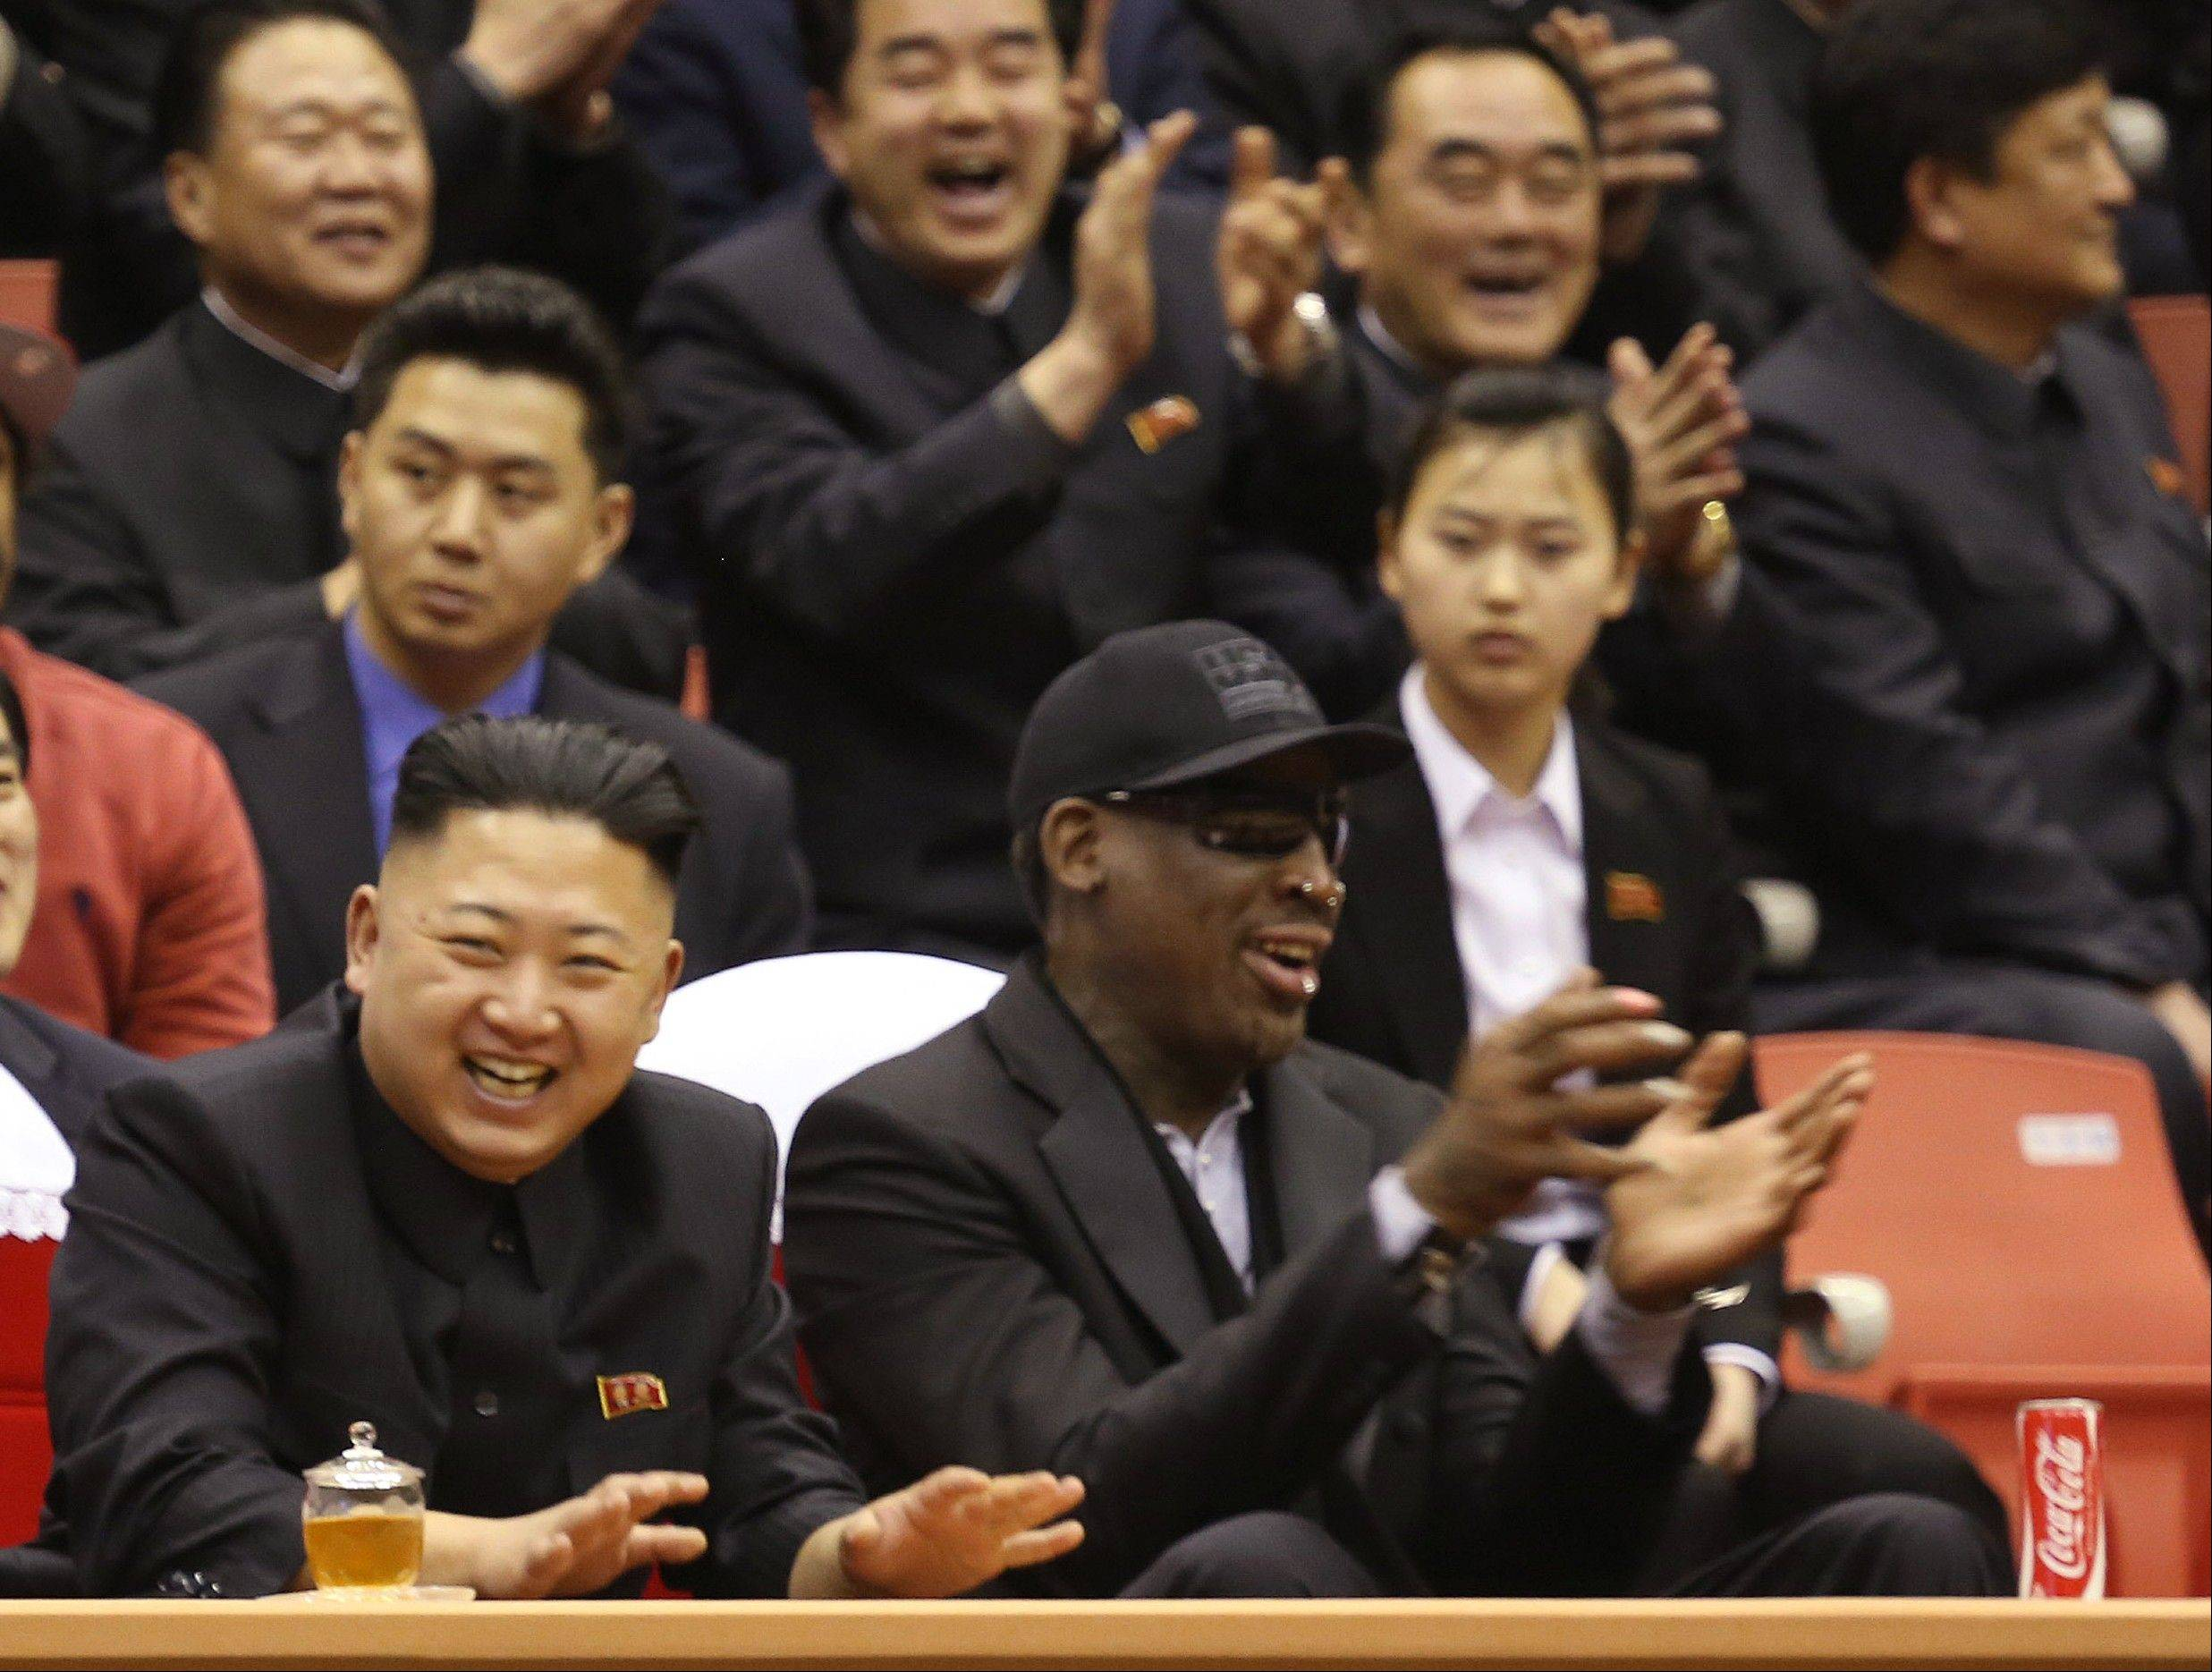 ASSOCIATED PRESSNorth Korean leader Kim Jong Un, left, and former NBA star Dennis Rodman watch North Korean and U.S. players in an exhibition basketball game at an arena in Pyongyang, North Korea, Thursday. Rodman arrived in Pyongyang on Monday with three members of the Harlem Globetrotters basketball team to shoot an episode on North Korea for a new weekly HBO series.